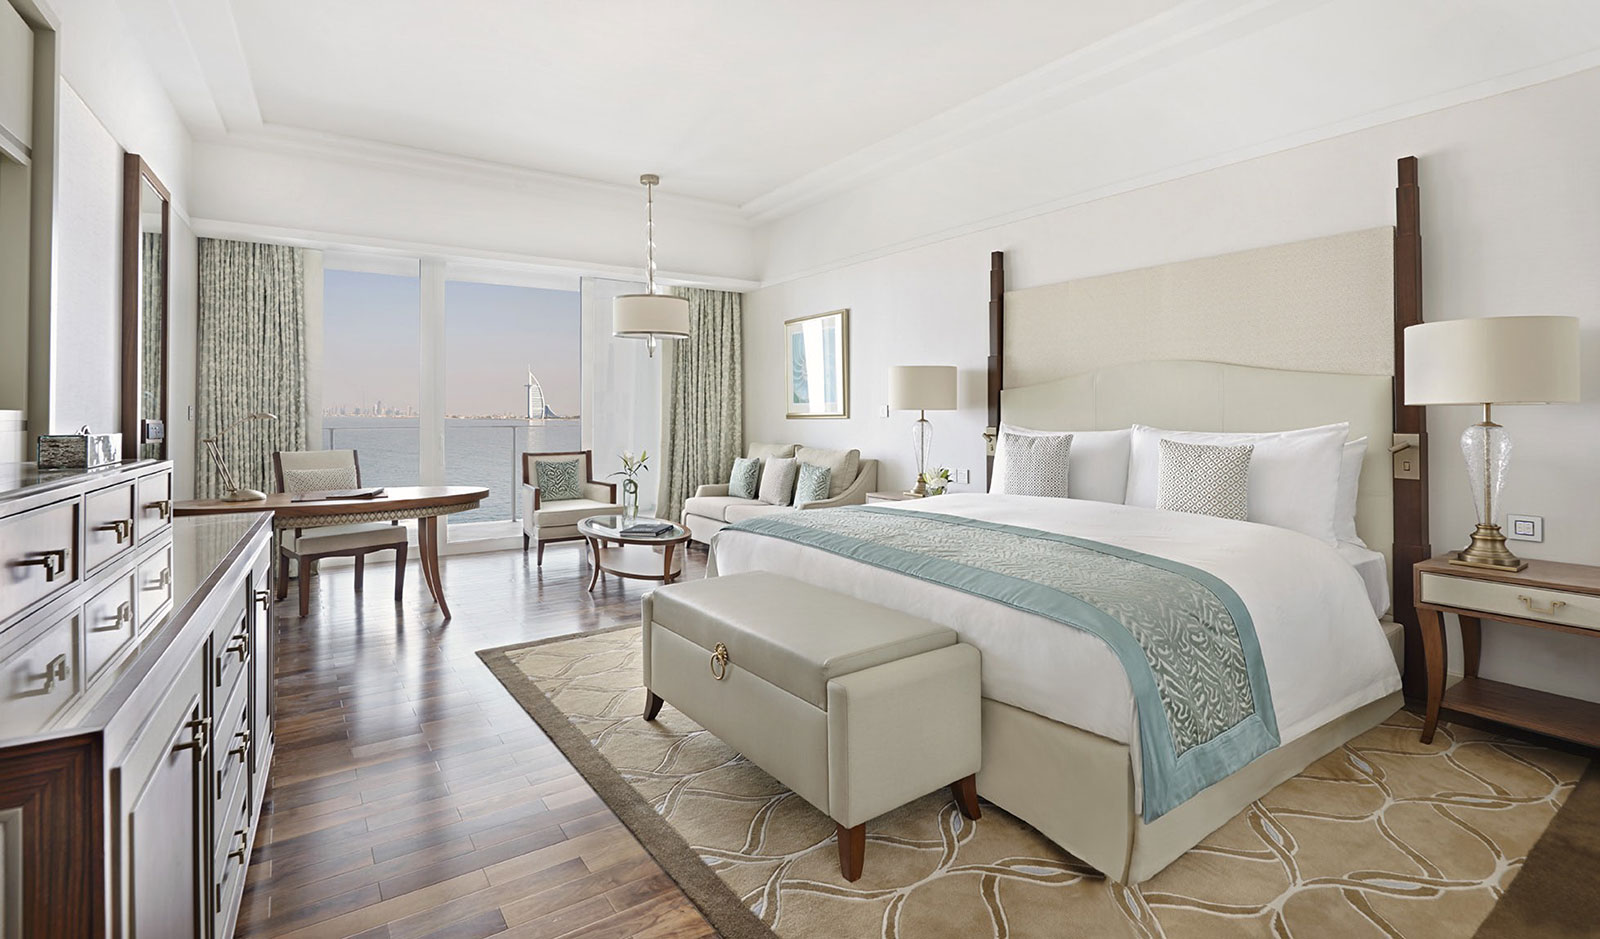 Waldorf astoria hotels resorts opens second hotel in for Hotel de dubai